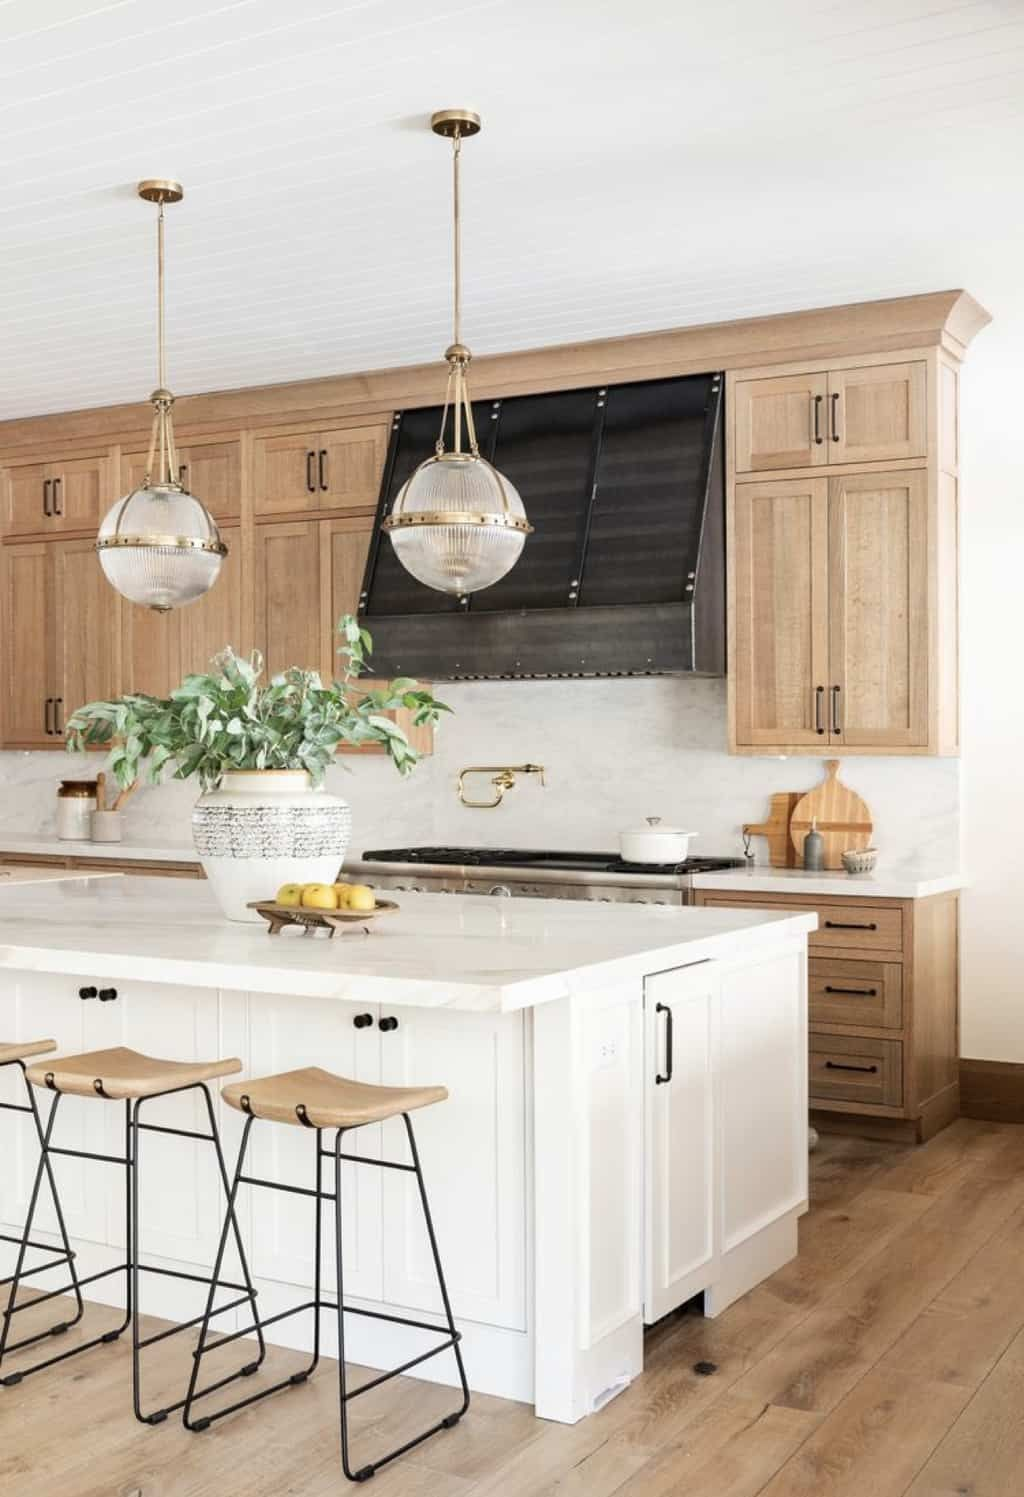 Pin On Kitchen Ideas